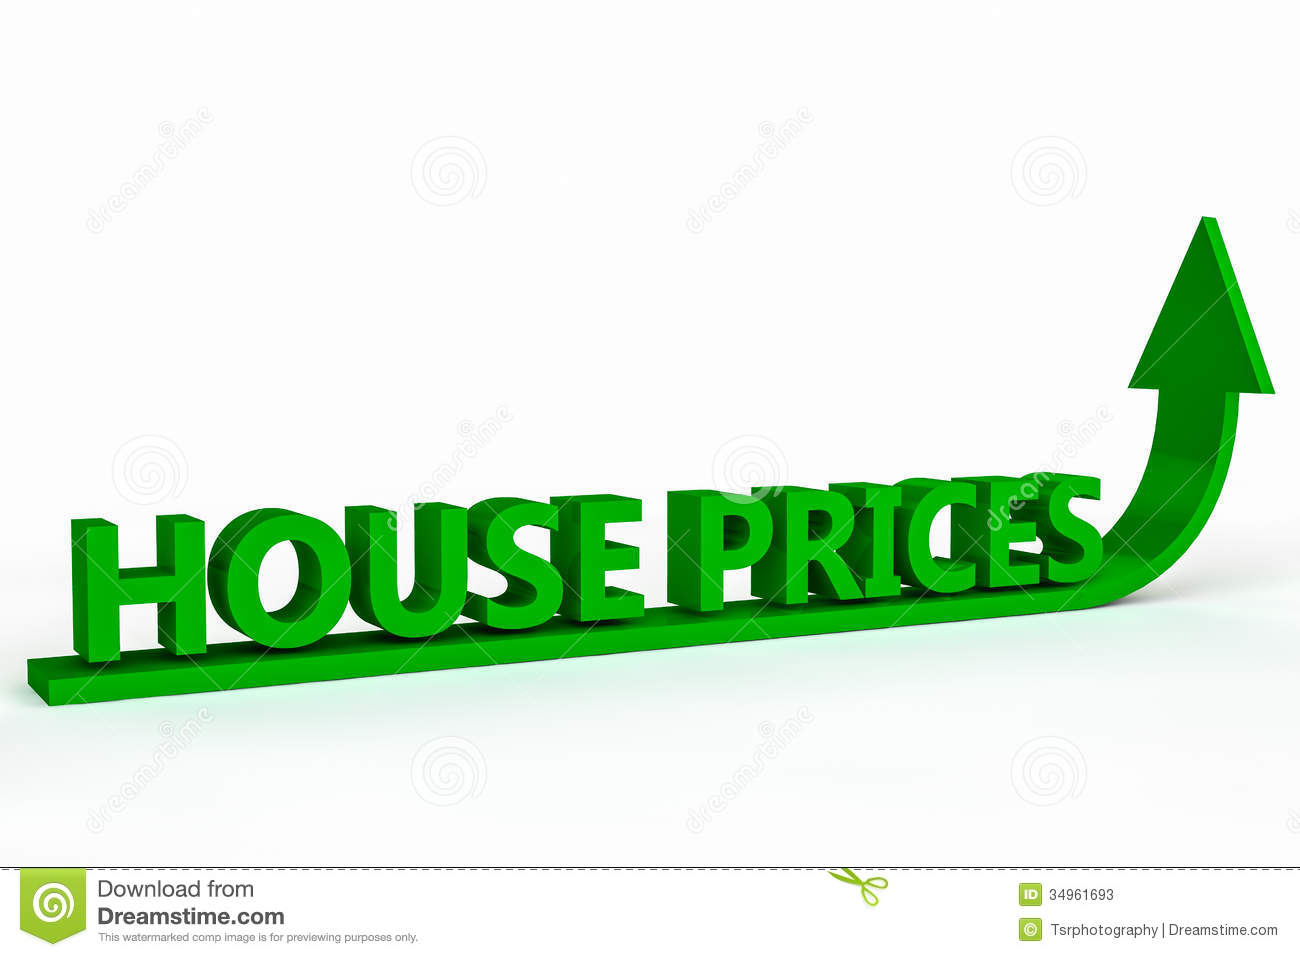 rising house prices stock photos - image: 34961693